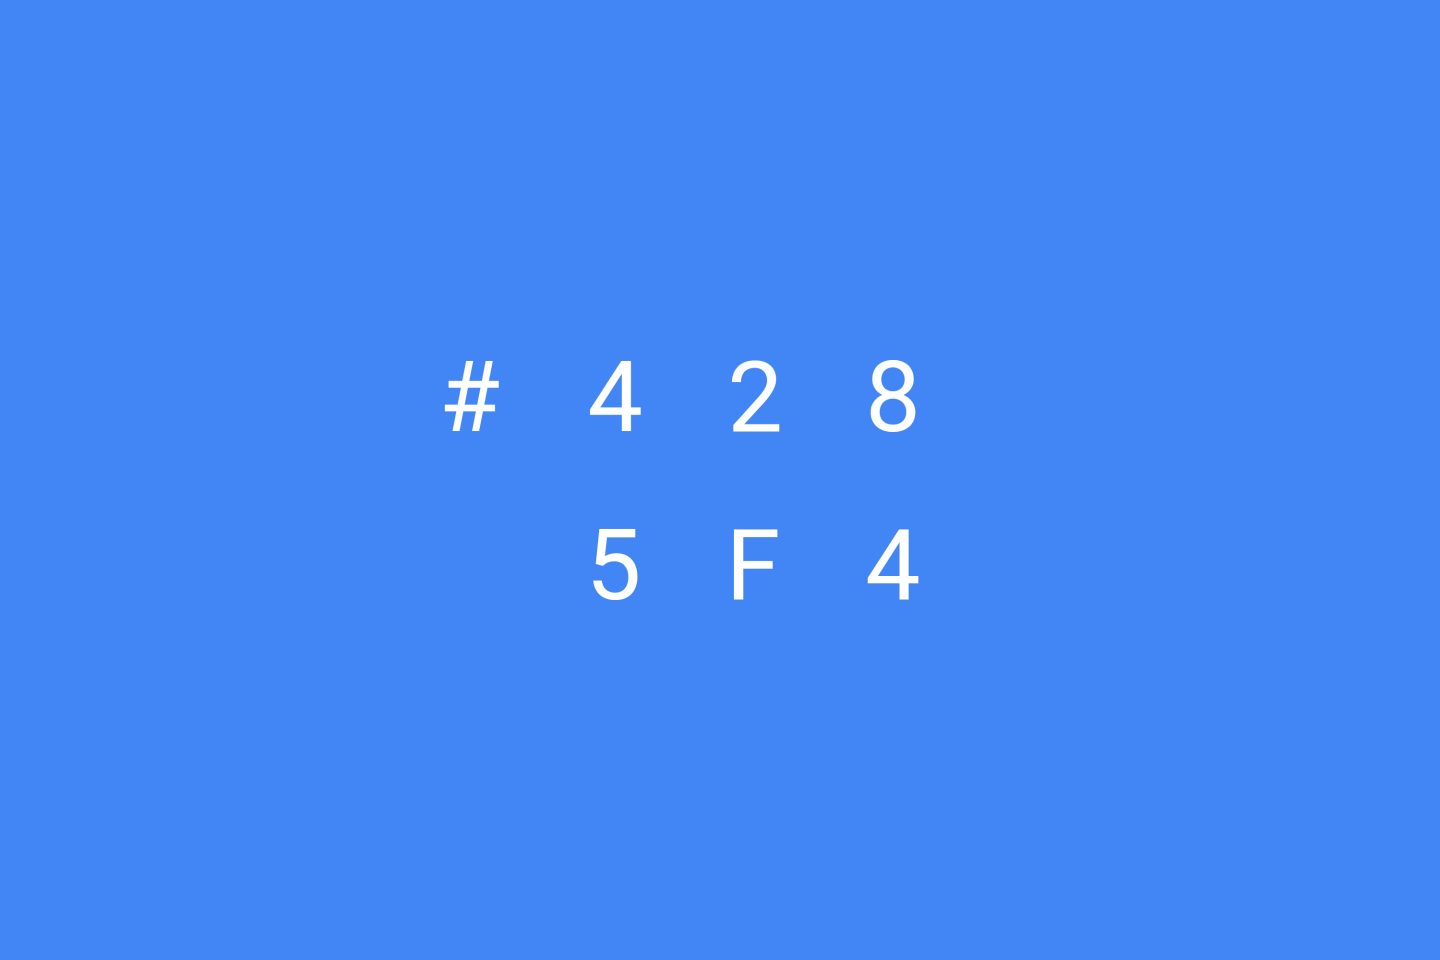 Google Brand Colors - Blue